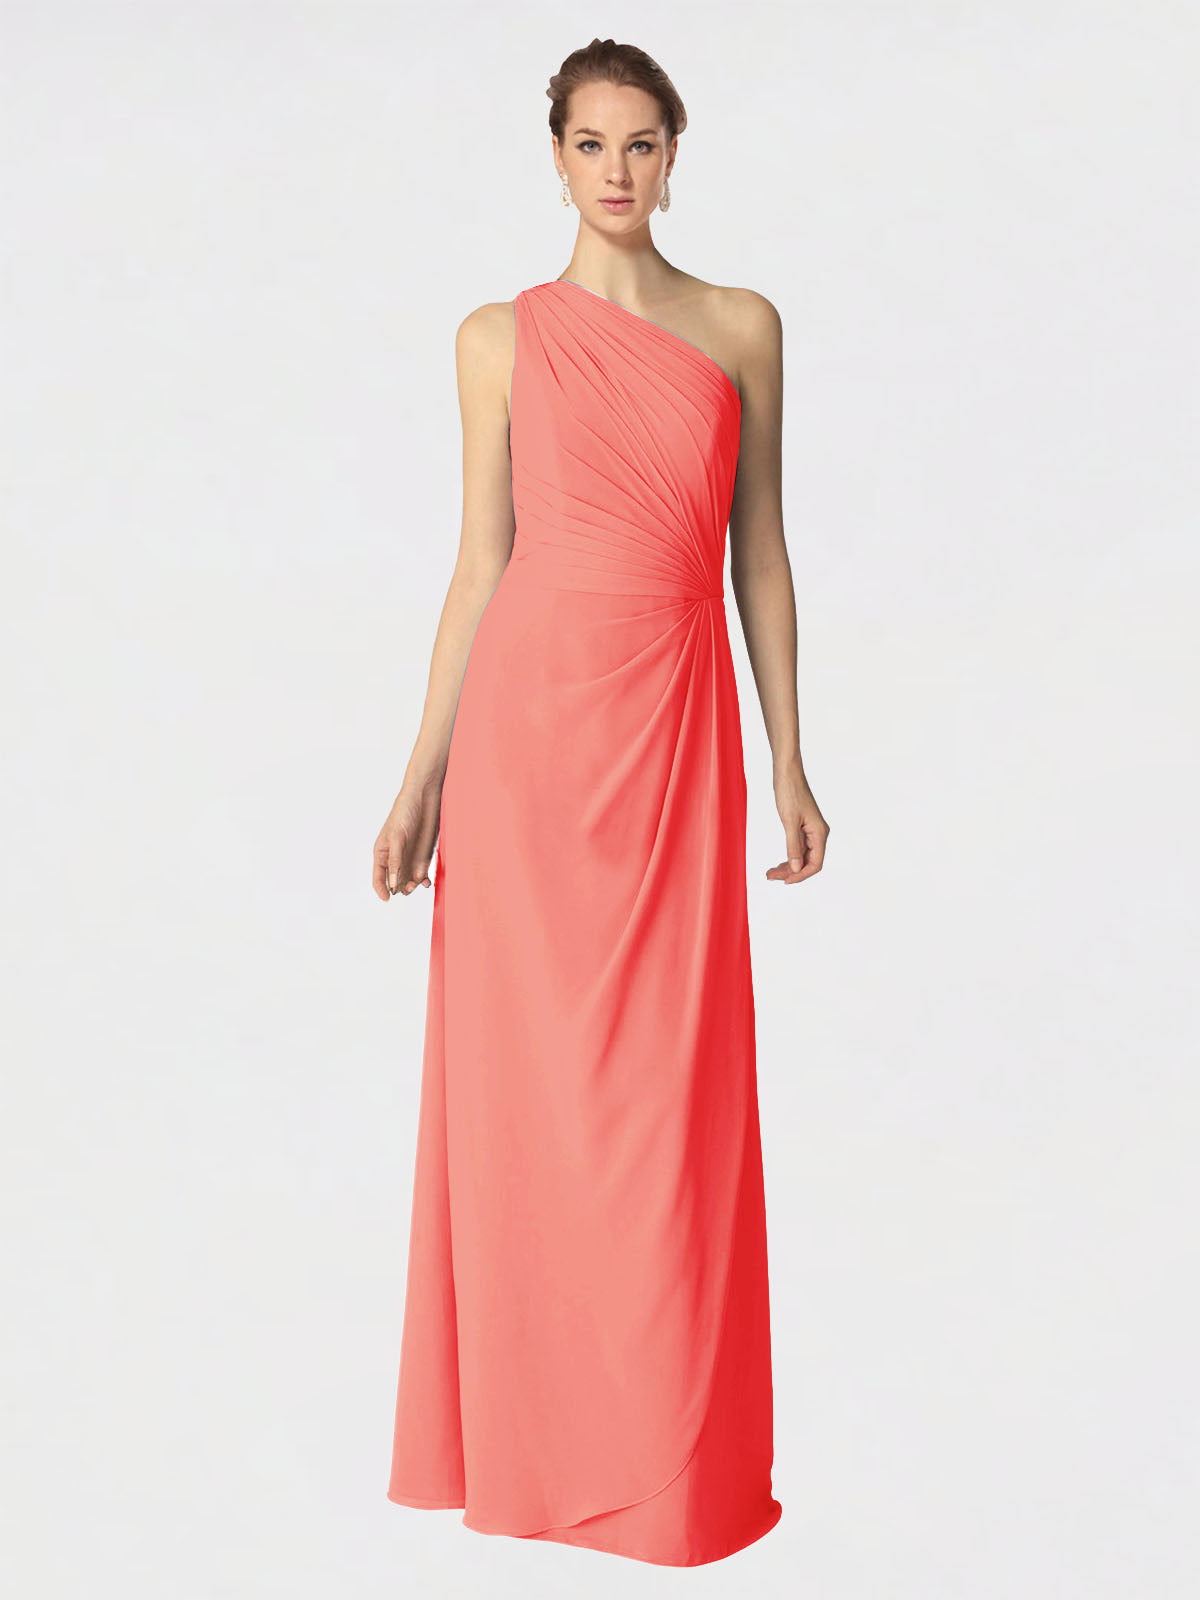 Long A-Line One Shoulder Sleeveless Coral Chiffon Bridesmaid Dress Aurora